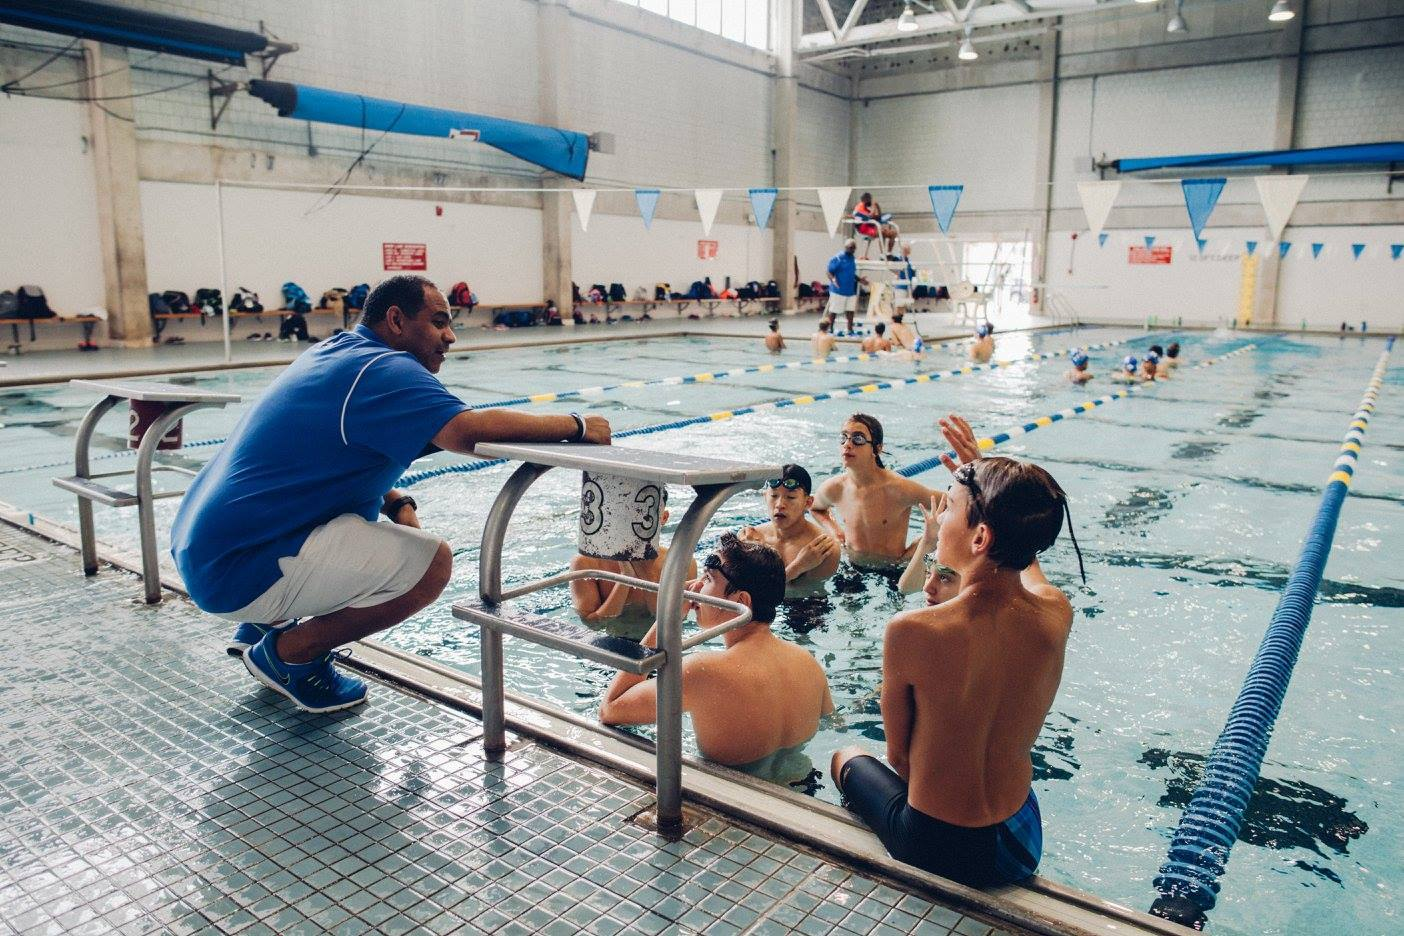 Nike peak performance fall weekend swim clinic boston ma - Swimming pool swimming pool swimming pool ...